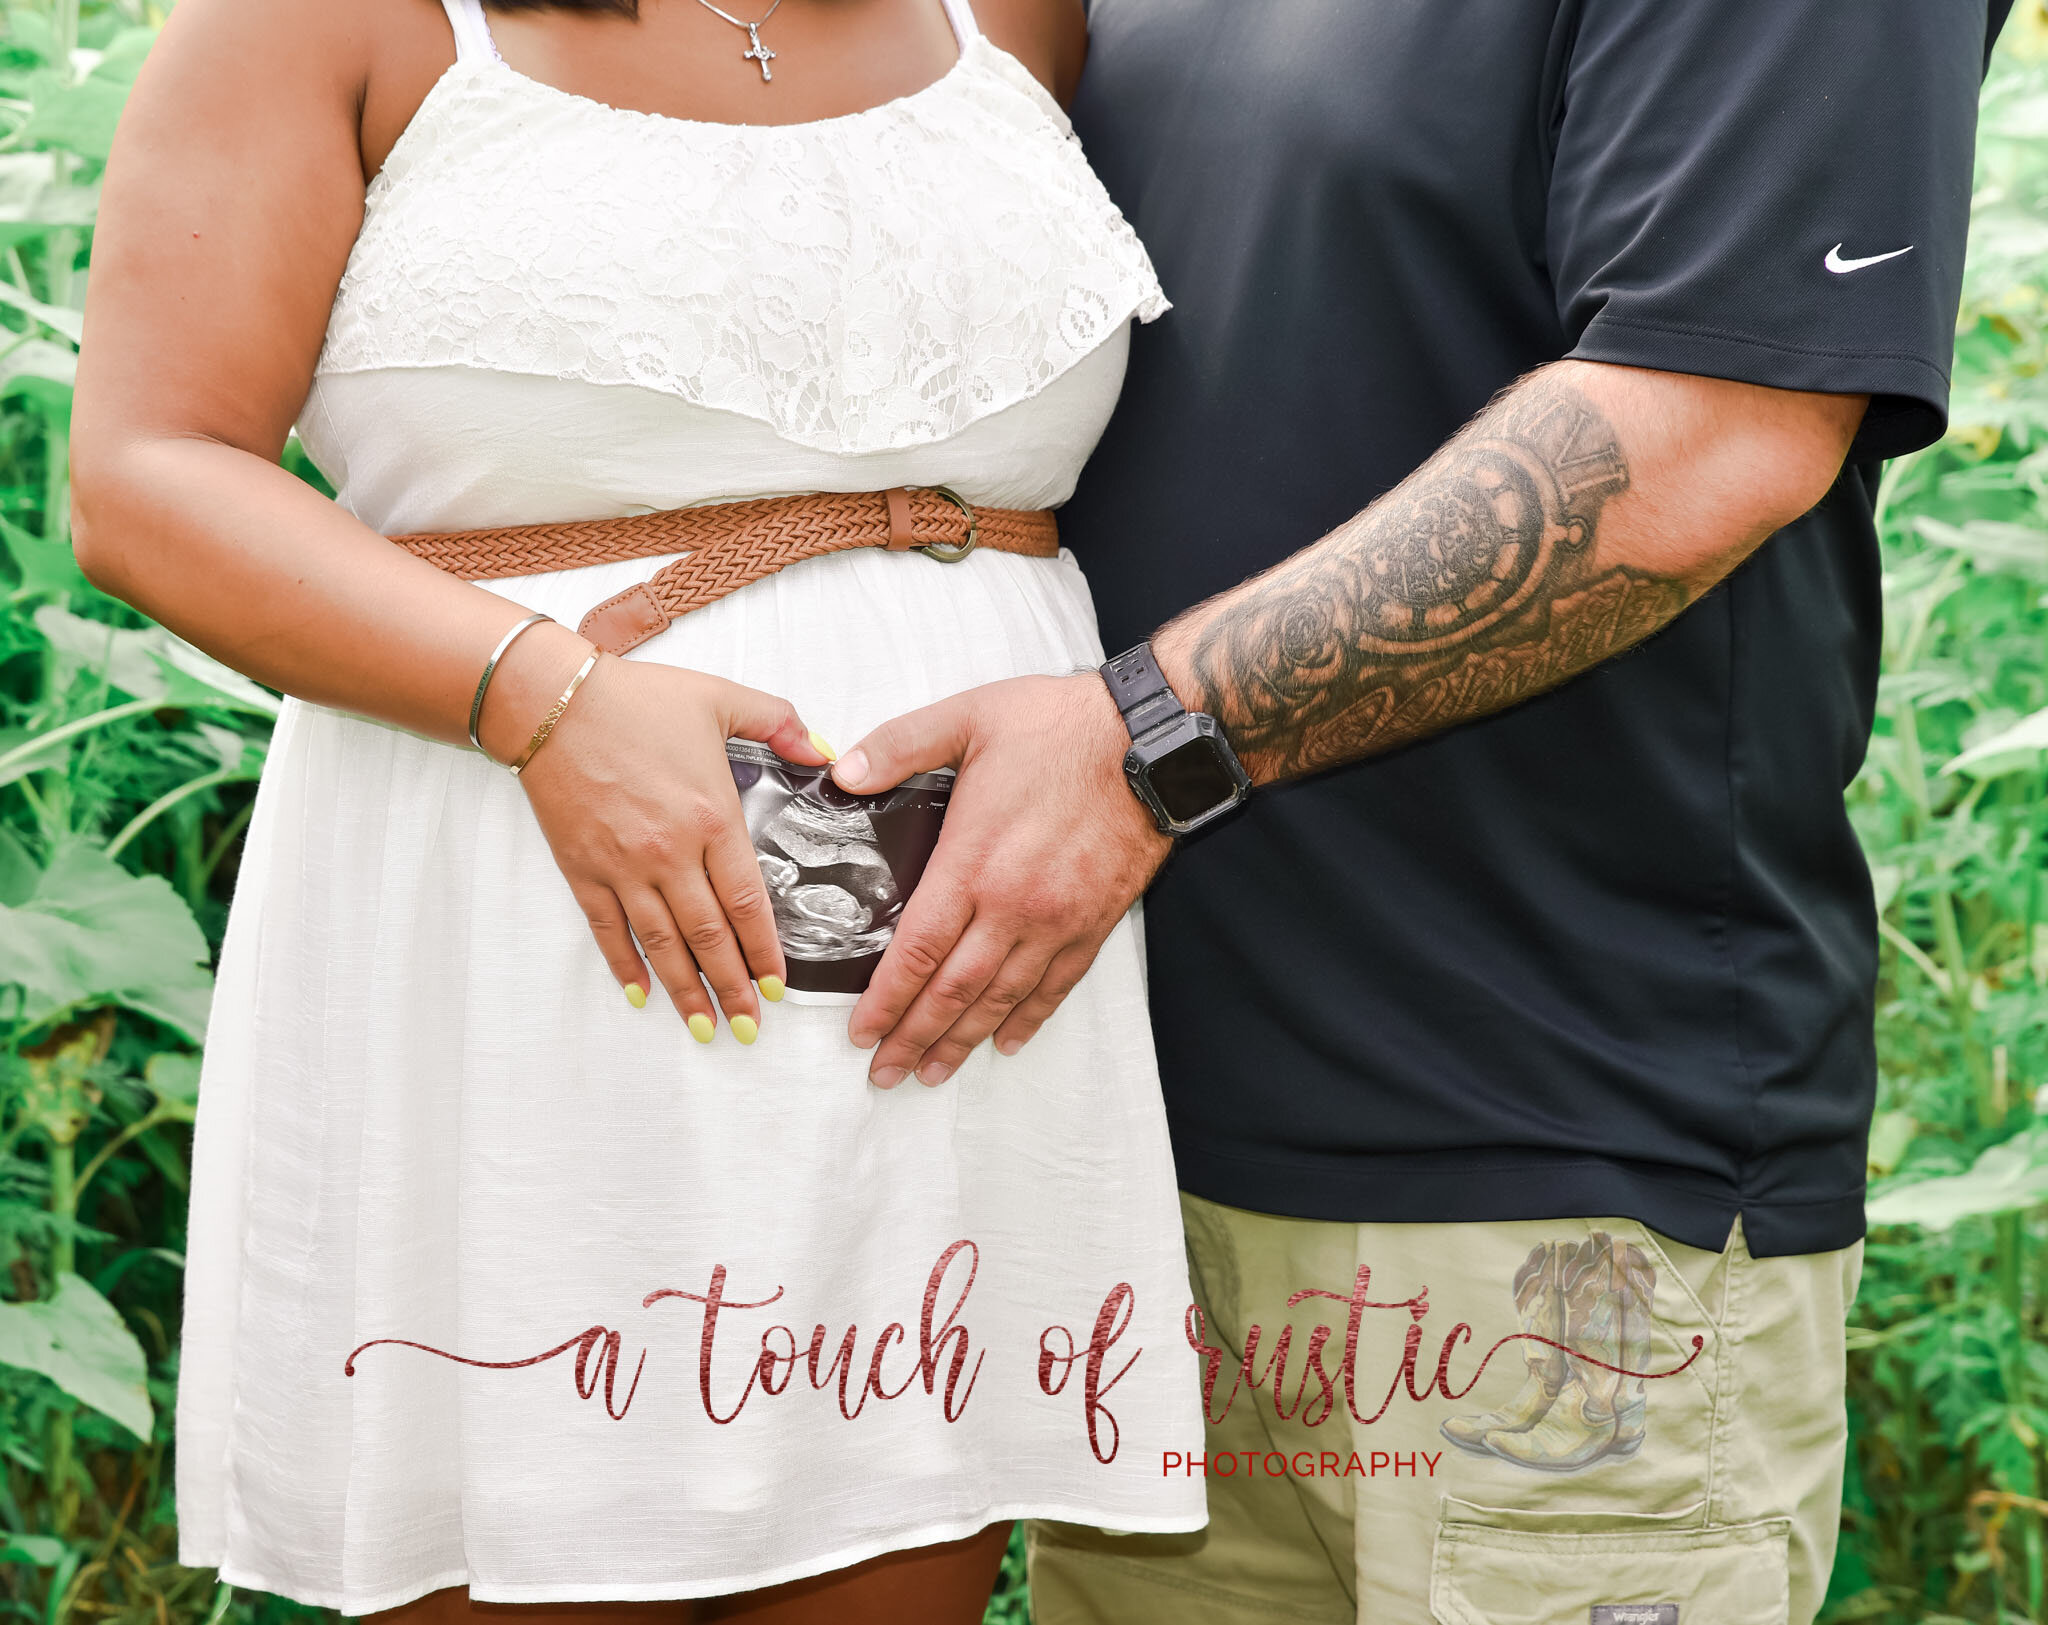 Maternity A Touch Of Rustic Photography